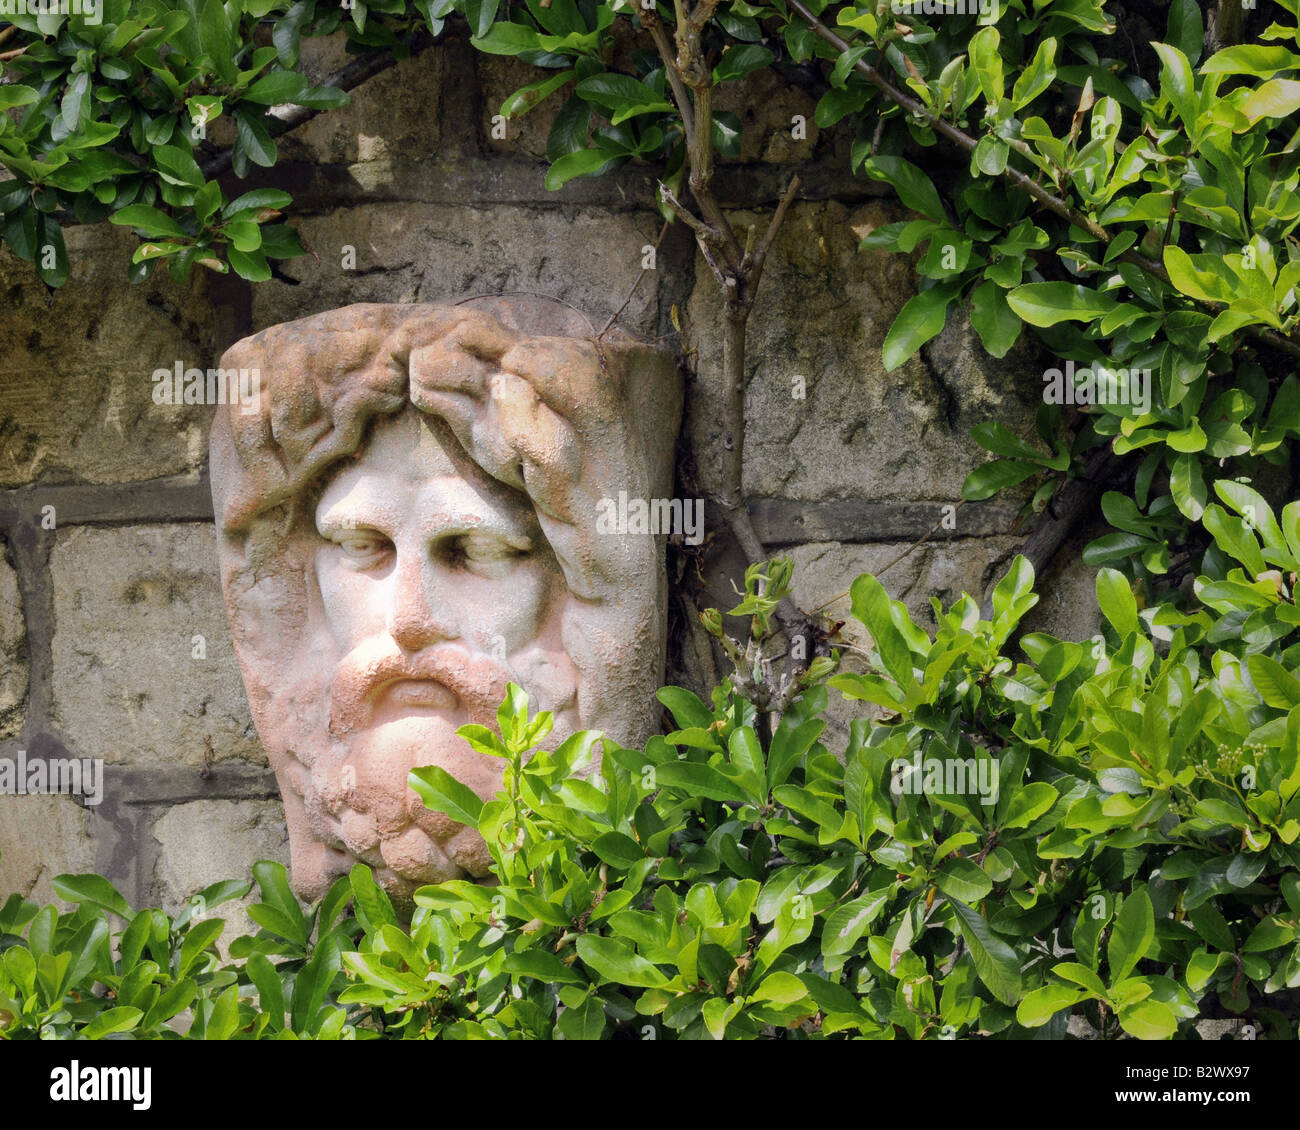 GB - GLOUCESTERSHIRE: Garden Detail at Parkgate, Cheltenham - Stock Image